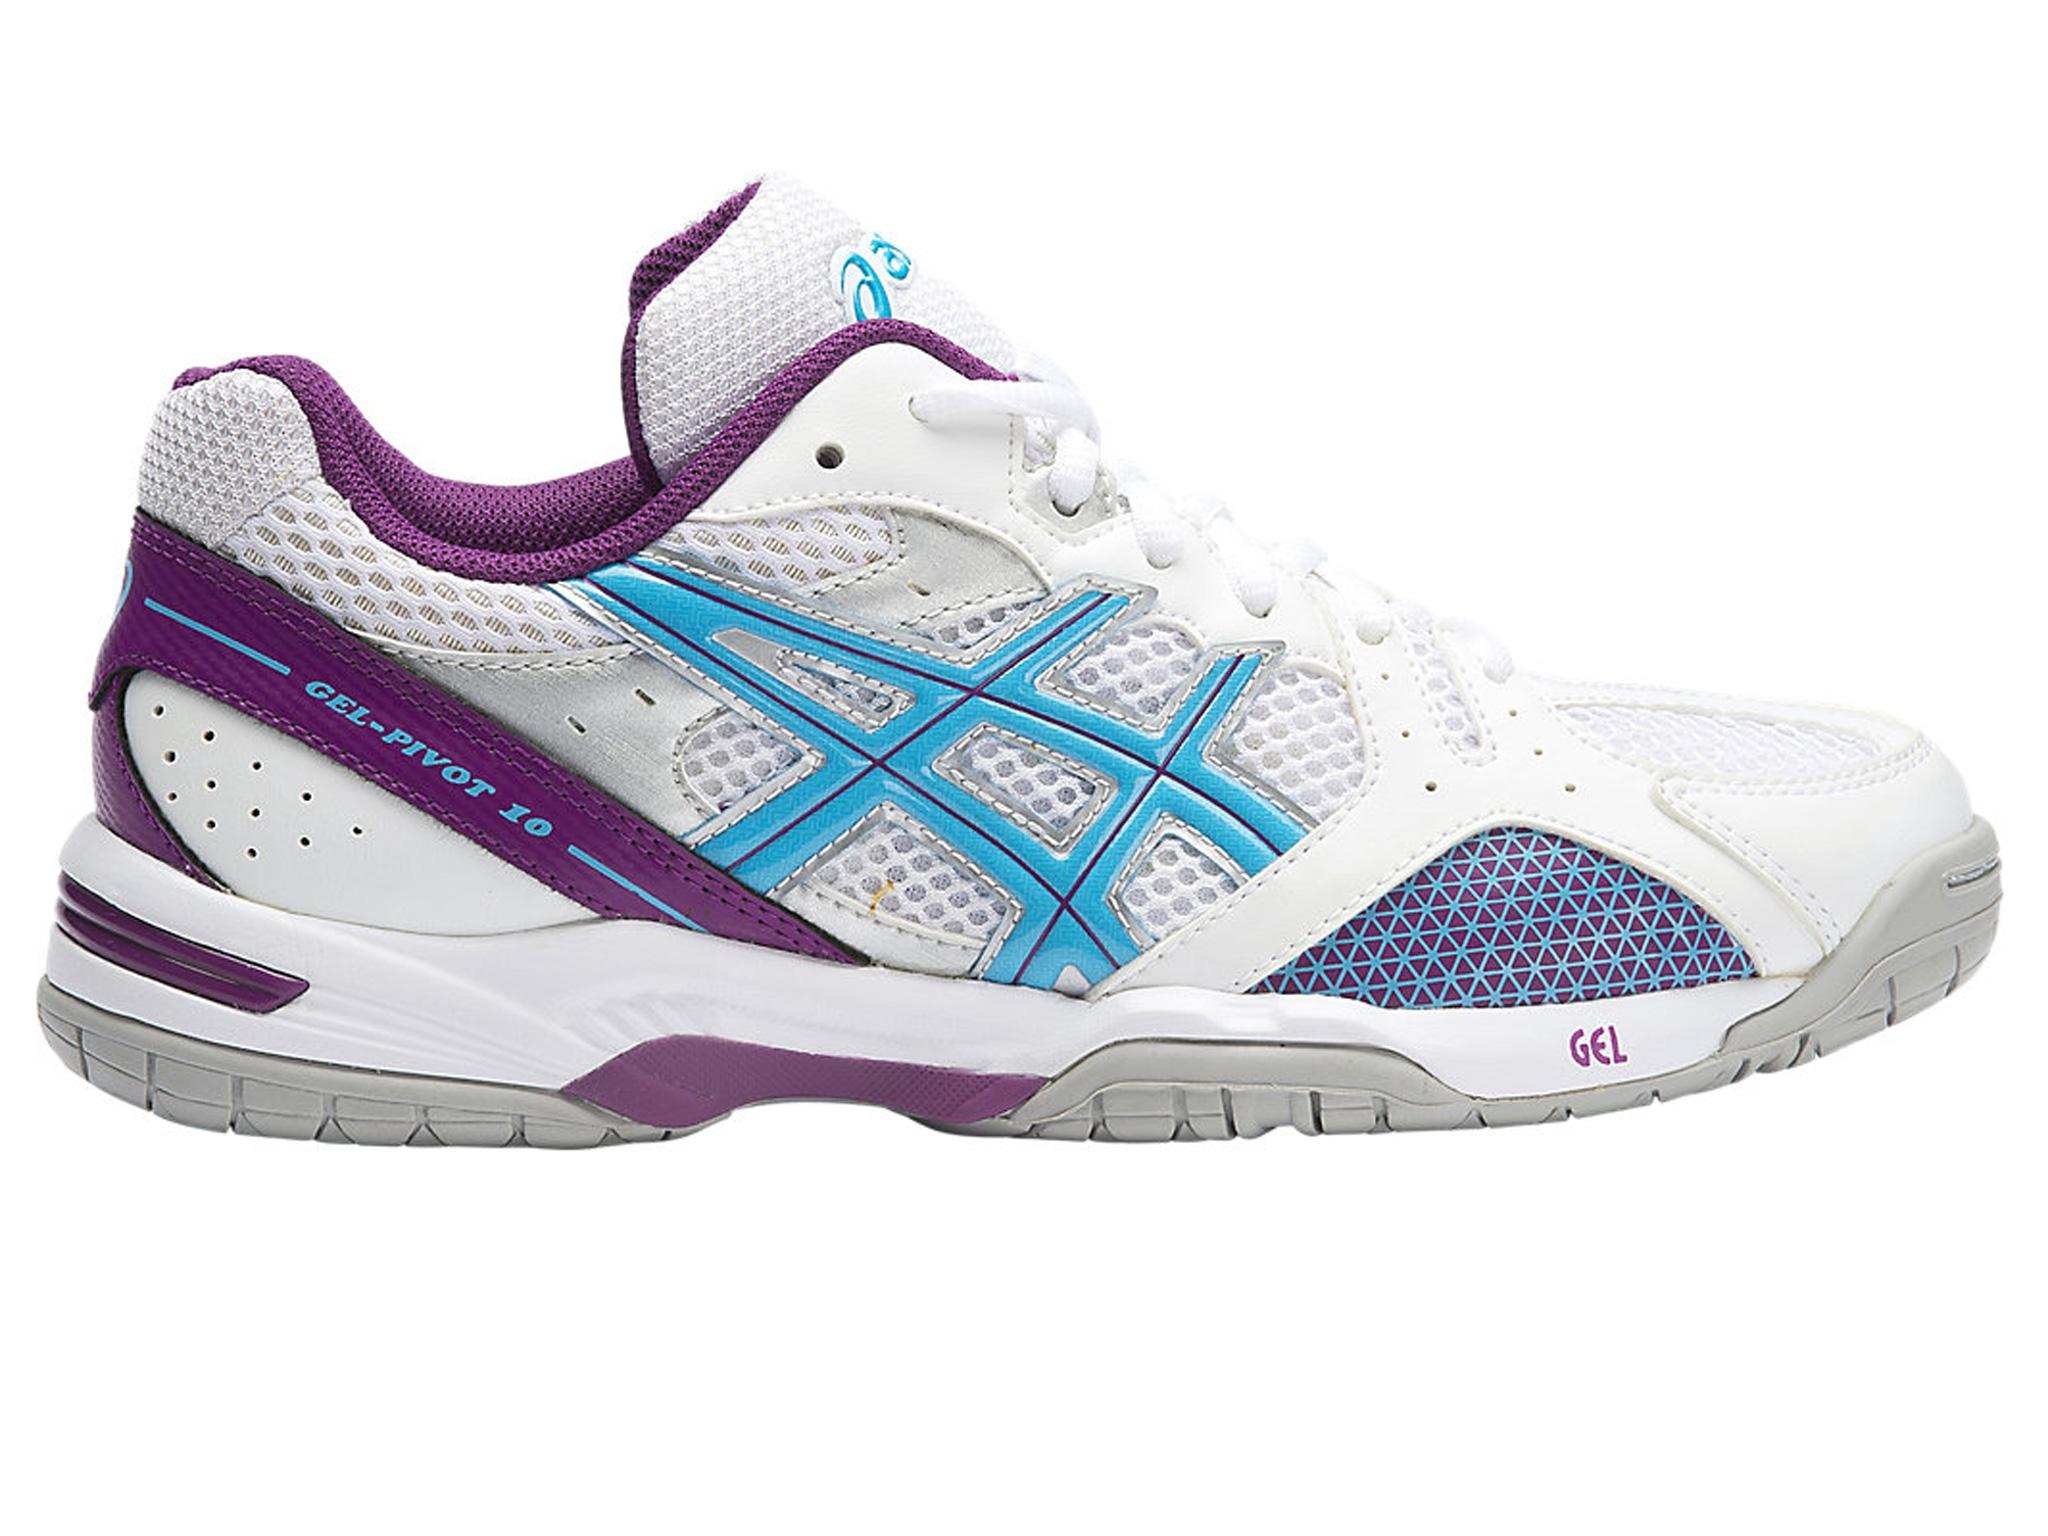 6 best netball trainers | The